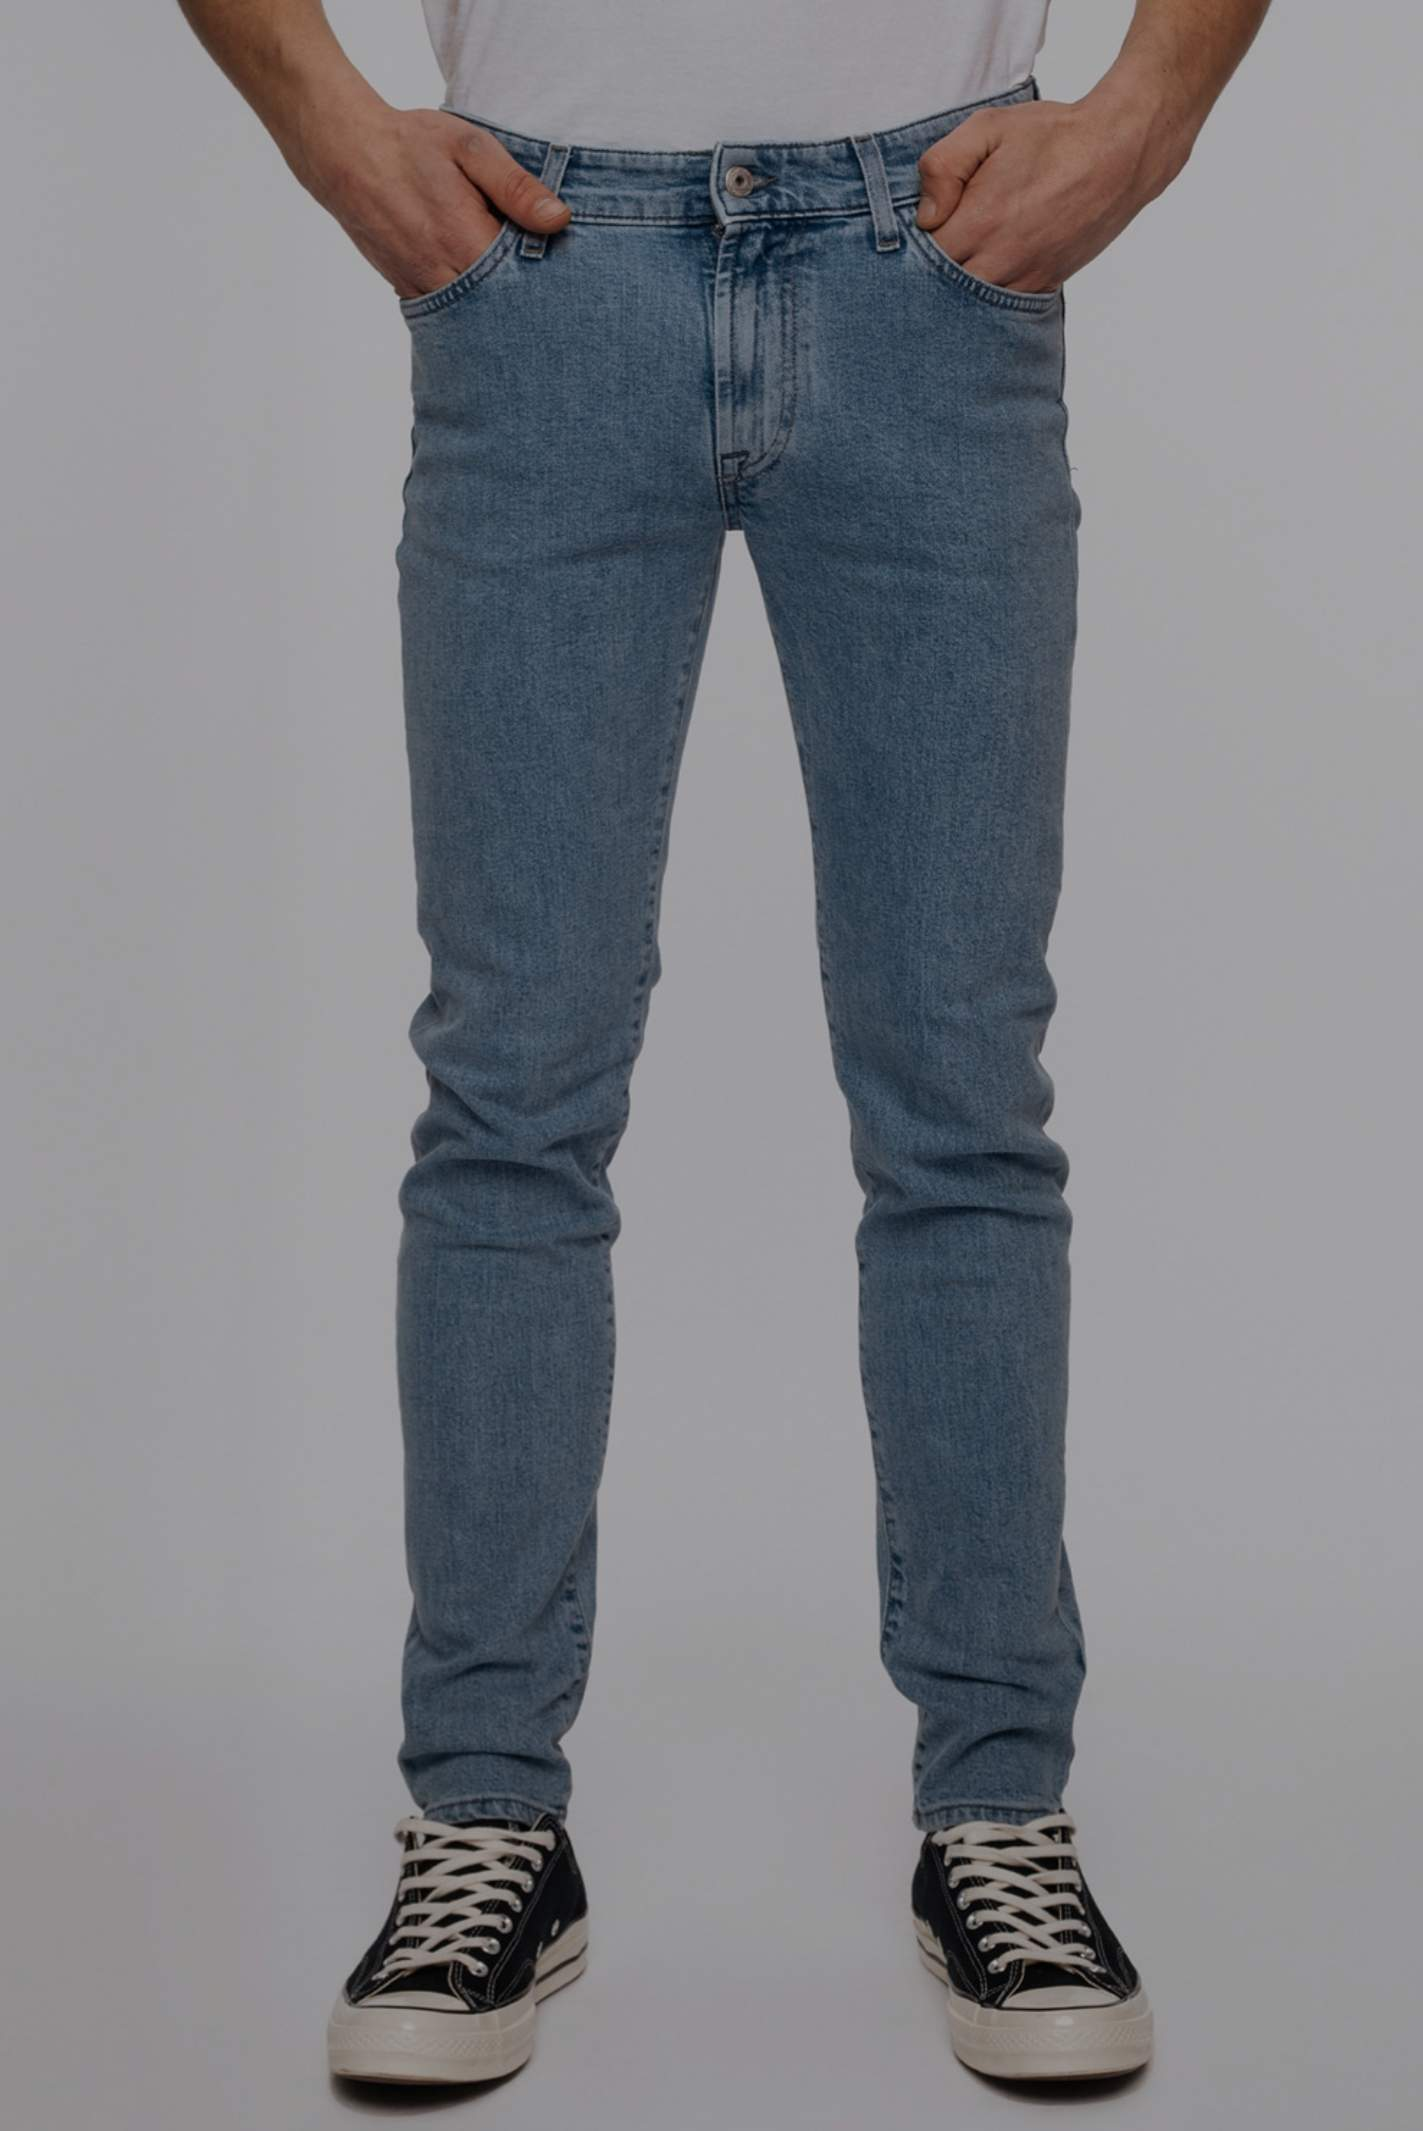 Jeans Roy Roger's 517 stretch